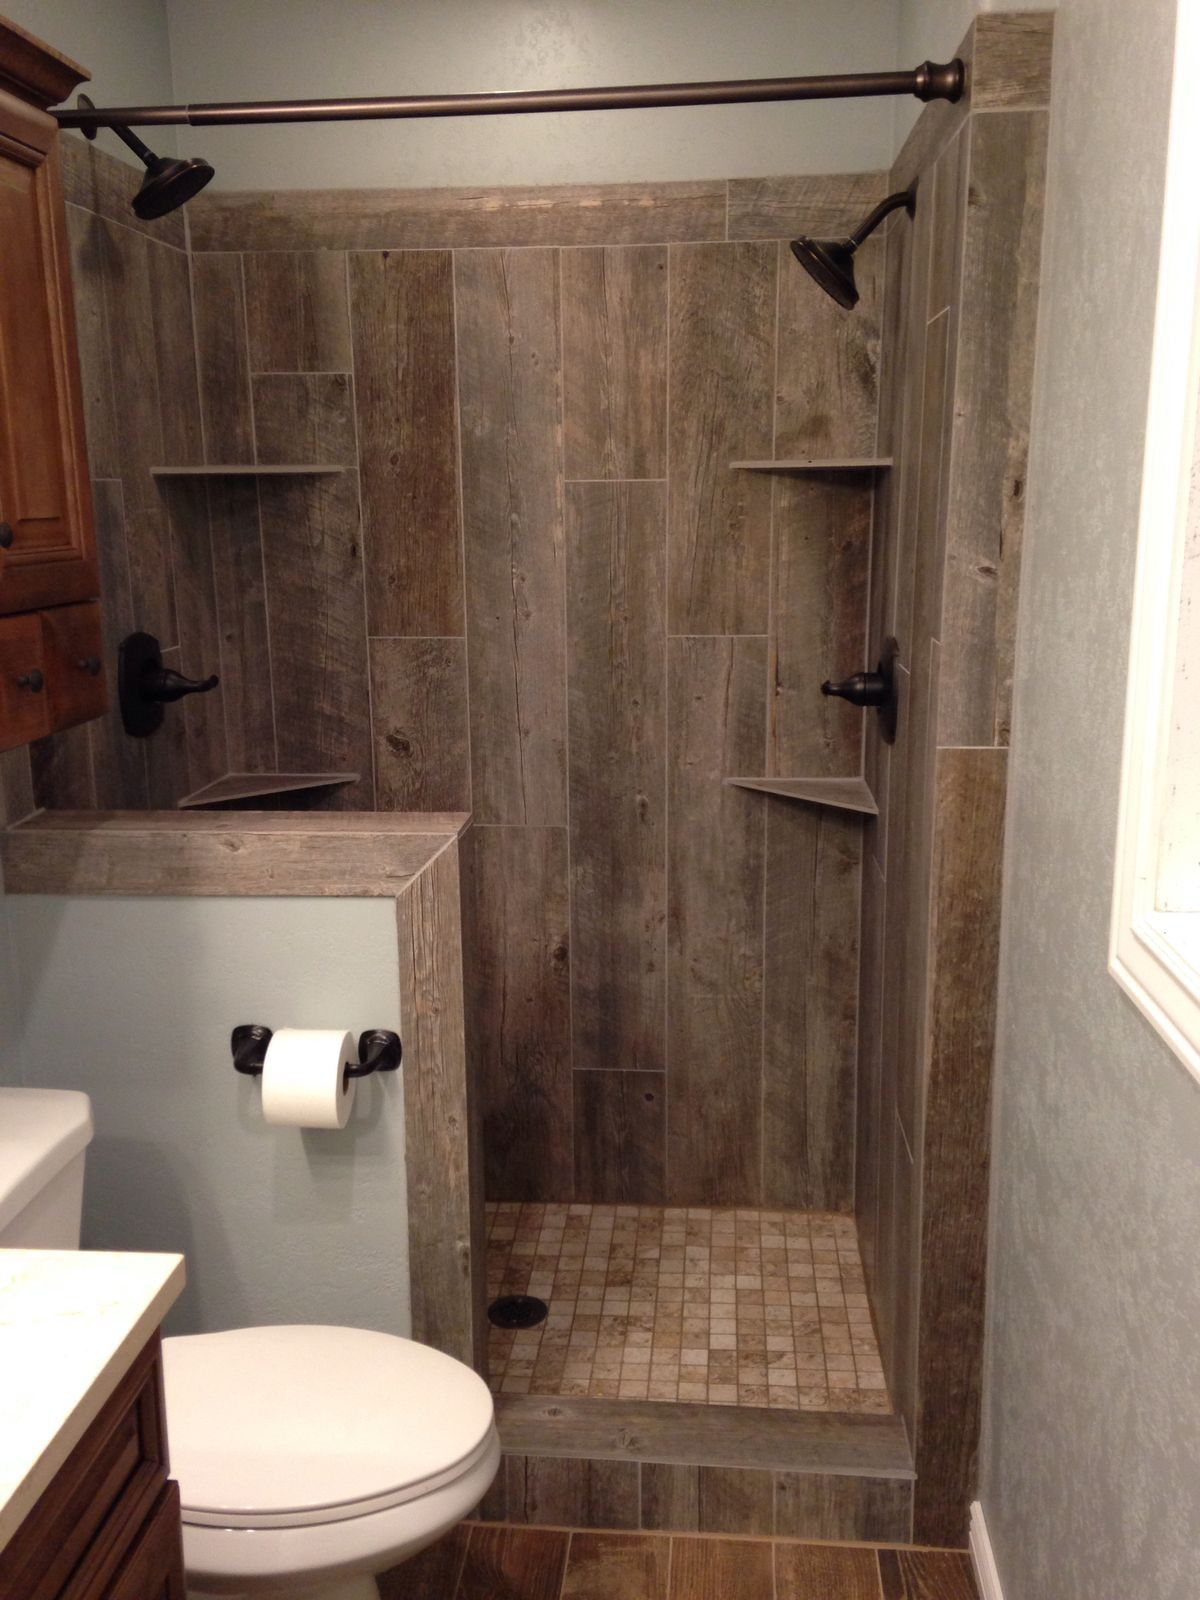 Small tile shower wood tile shower small bathroom showers small showers wood